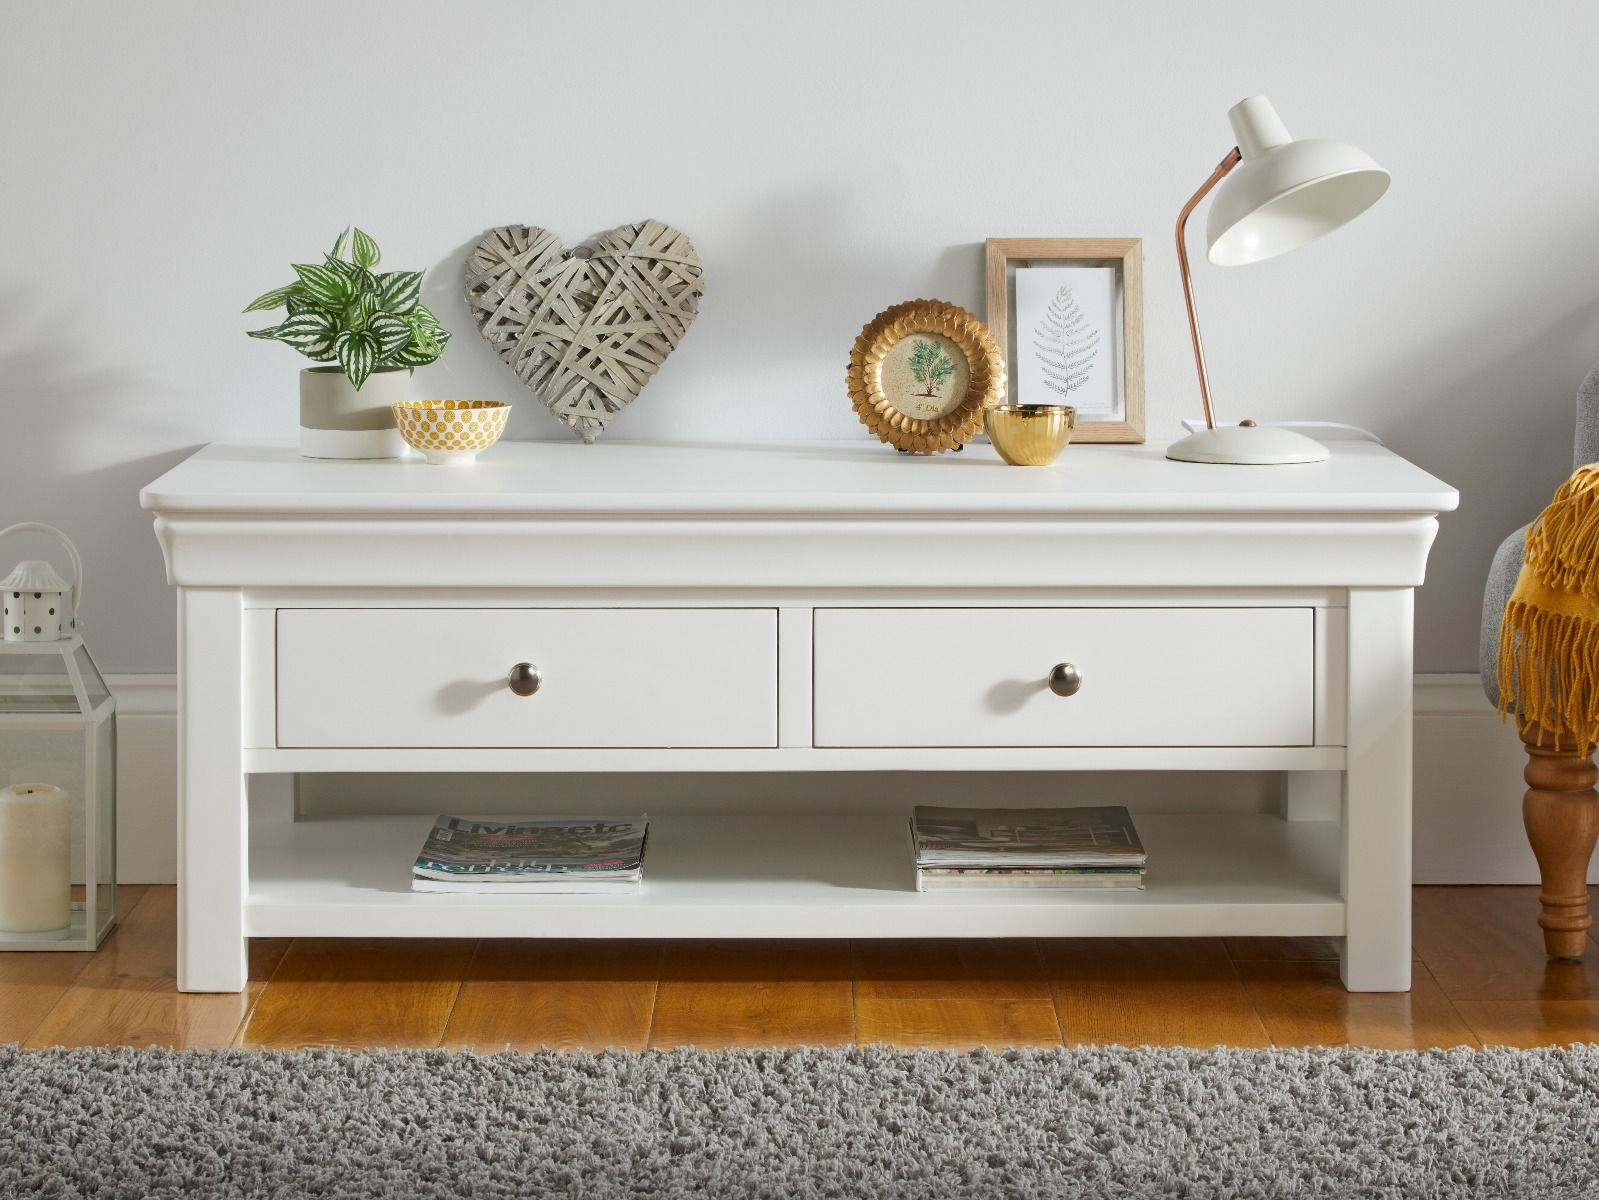 Toulouse White Painted Large Coffee Table 4 Drawers With Shelf Assembled